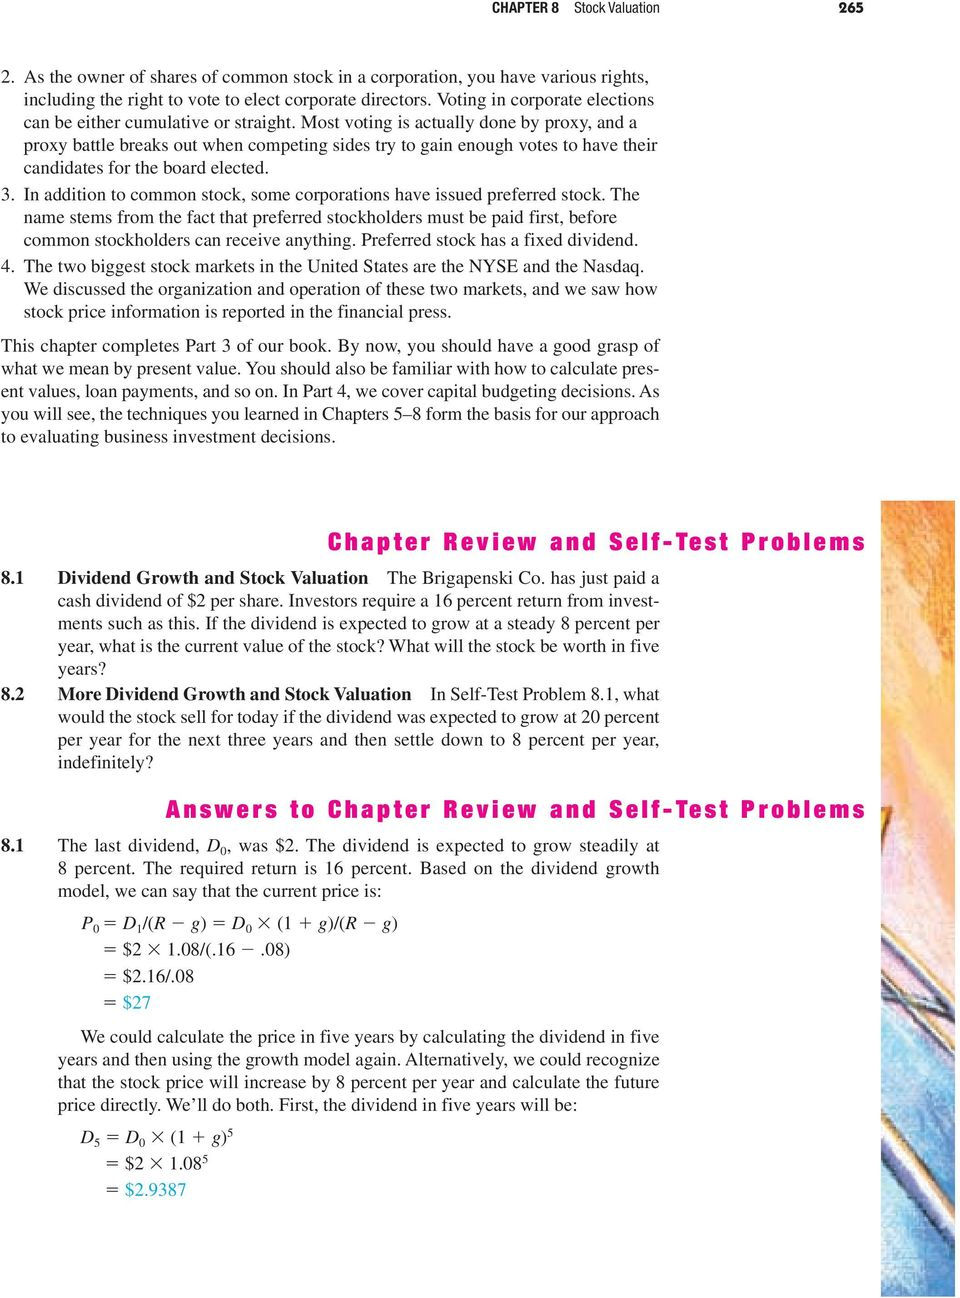 Chapter Review and Self-Test Problems - PDF